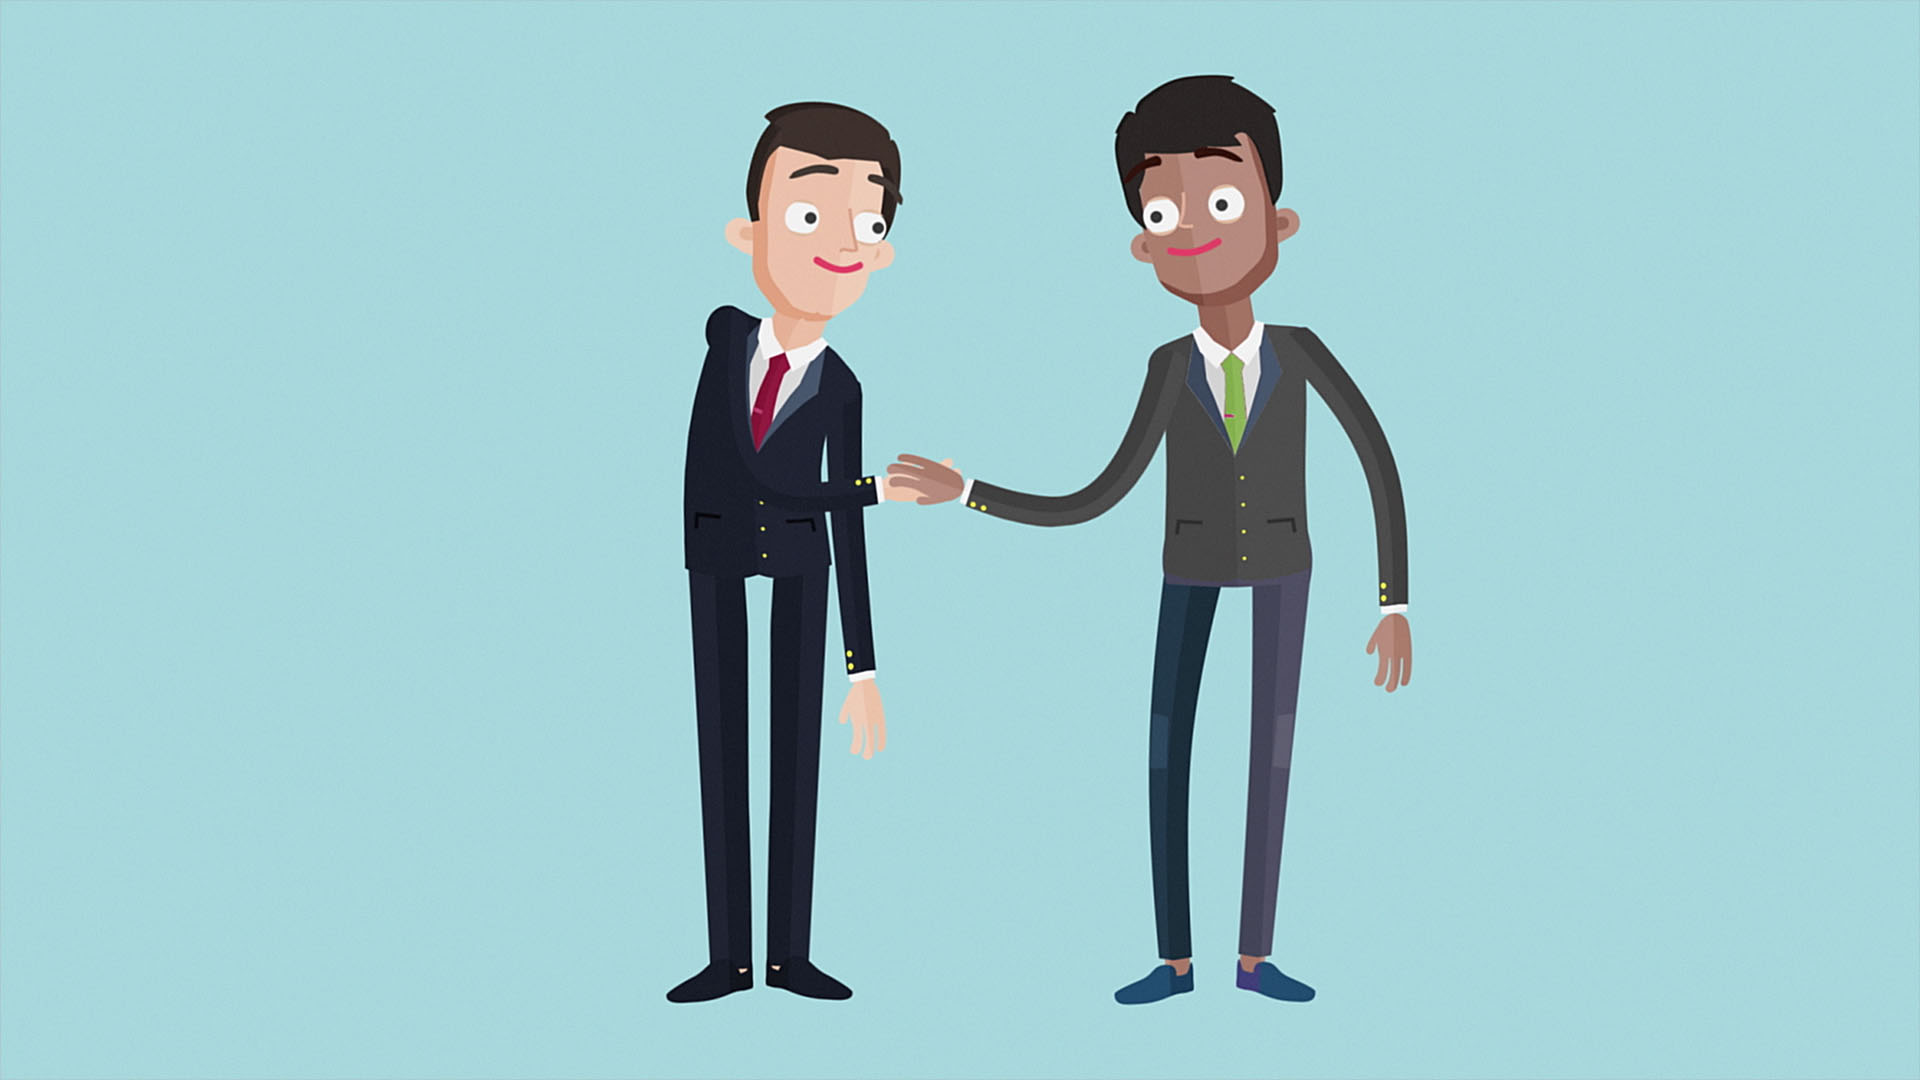 Traffic Penalty Tribunal Shaking Hands Animation